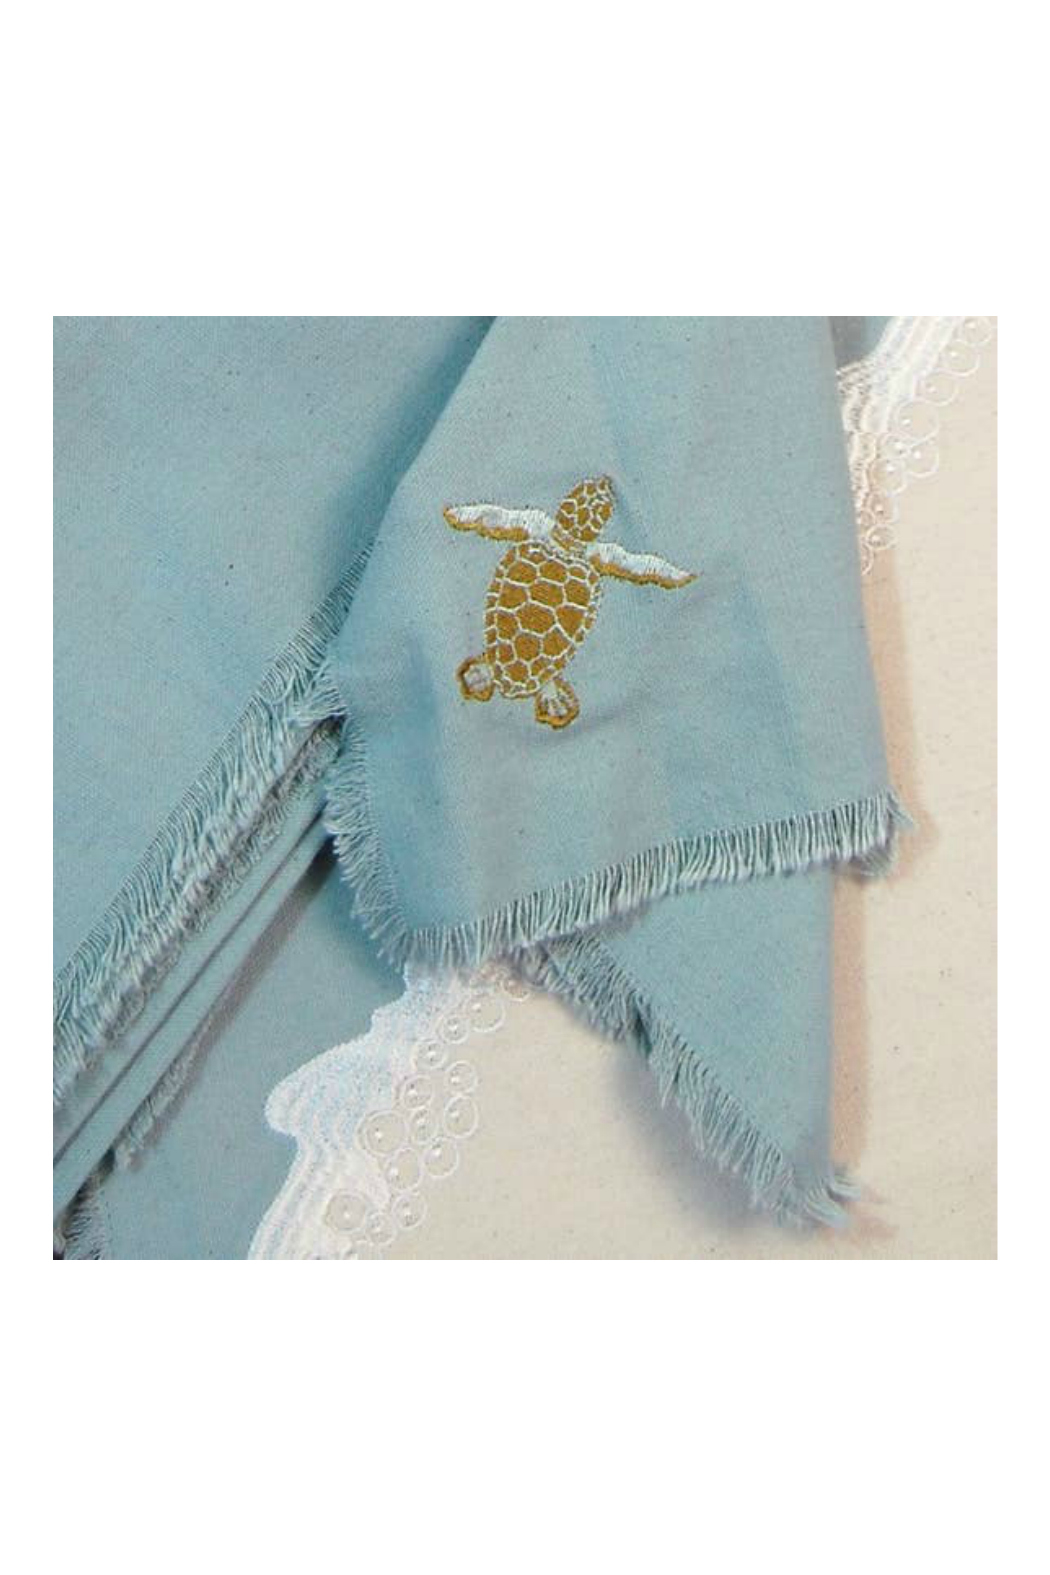 RIGHT SIDE DESIGN Embroidered Baby Sea Turtle Cotton Napkins s/4 - Main Image